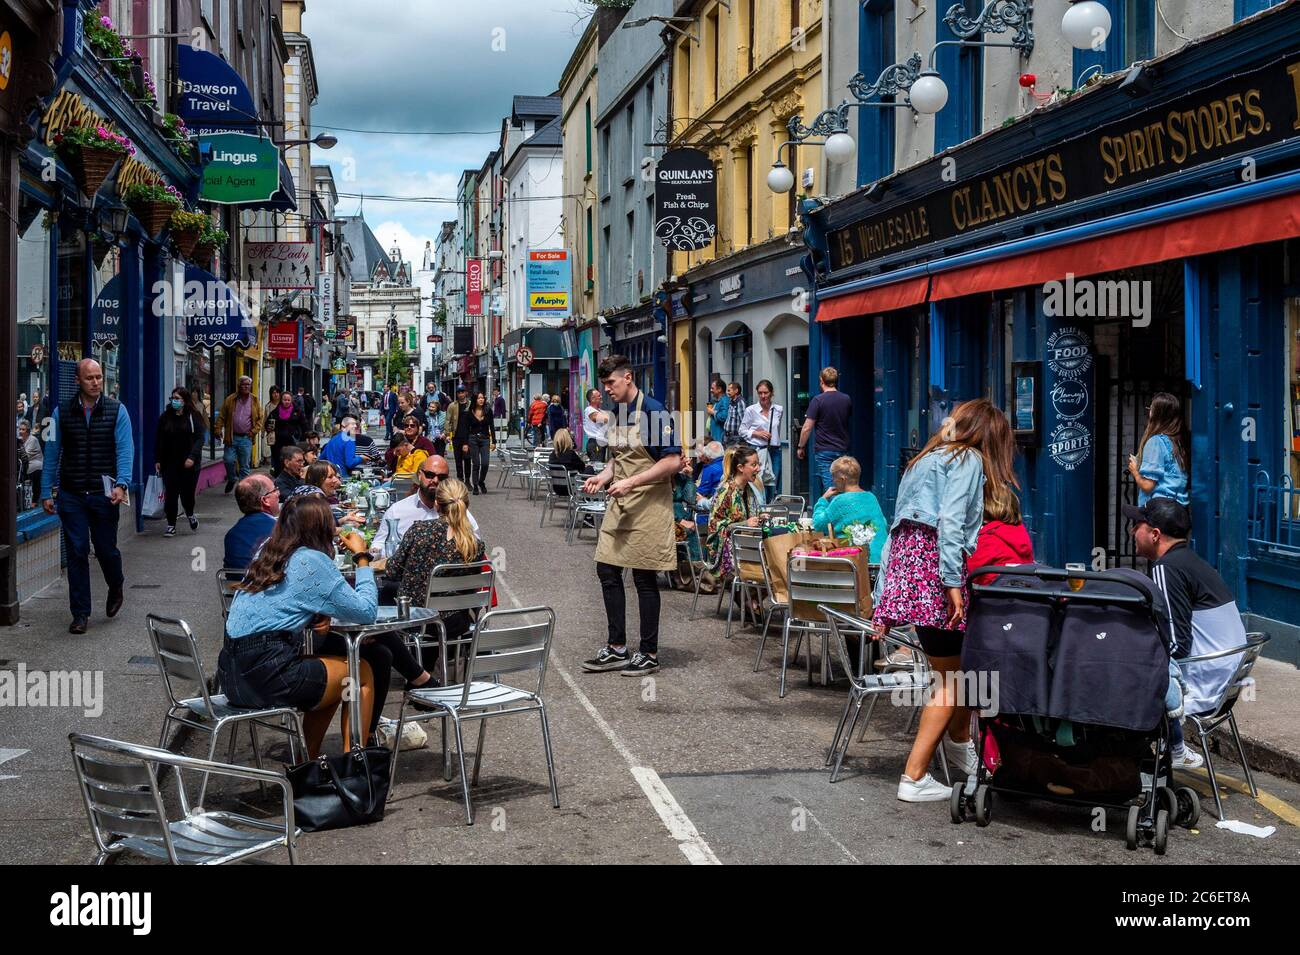 Cork, Ireland. 9th July, 2020. A number of cafés and restaurants in Cork city have implemented 'al fresco' eating on reopening after easing of some Covid-19 restrictions. Cafés are limiting indoor seating and taking customers names and phone numbers for the purposes of contact tracing. Credit: AG News/Alamy Live News Stock Photo